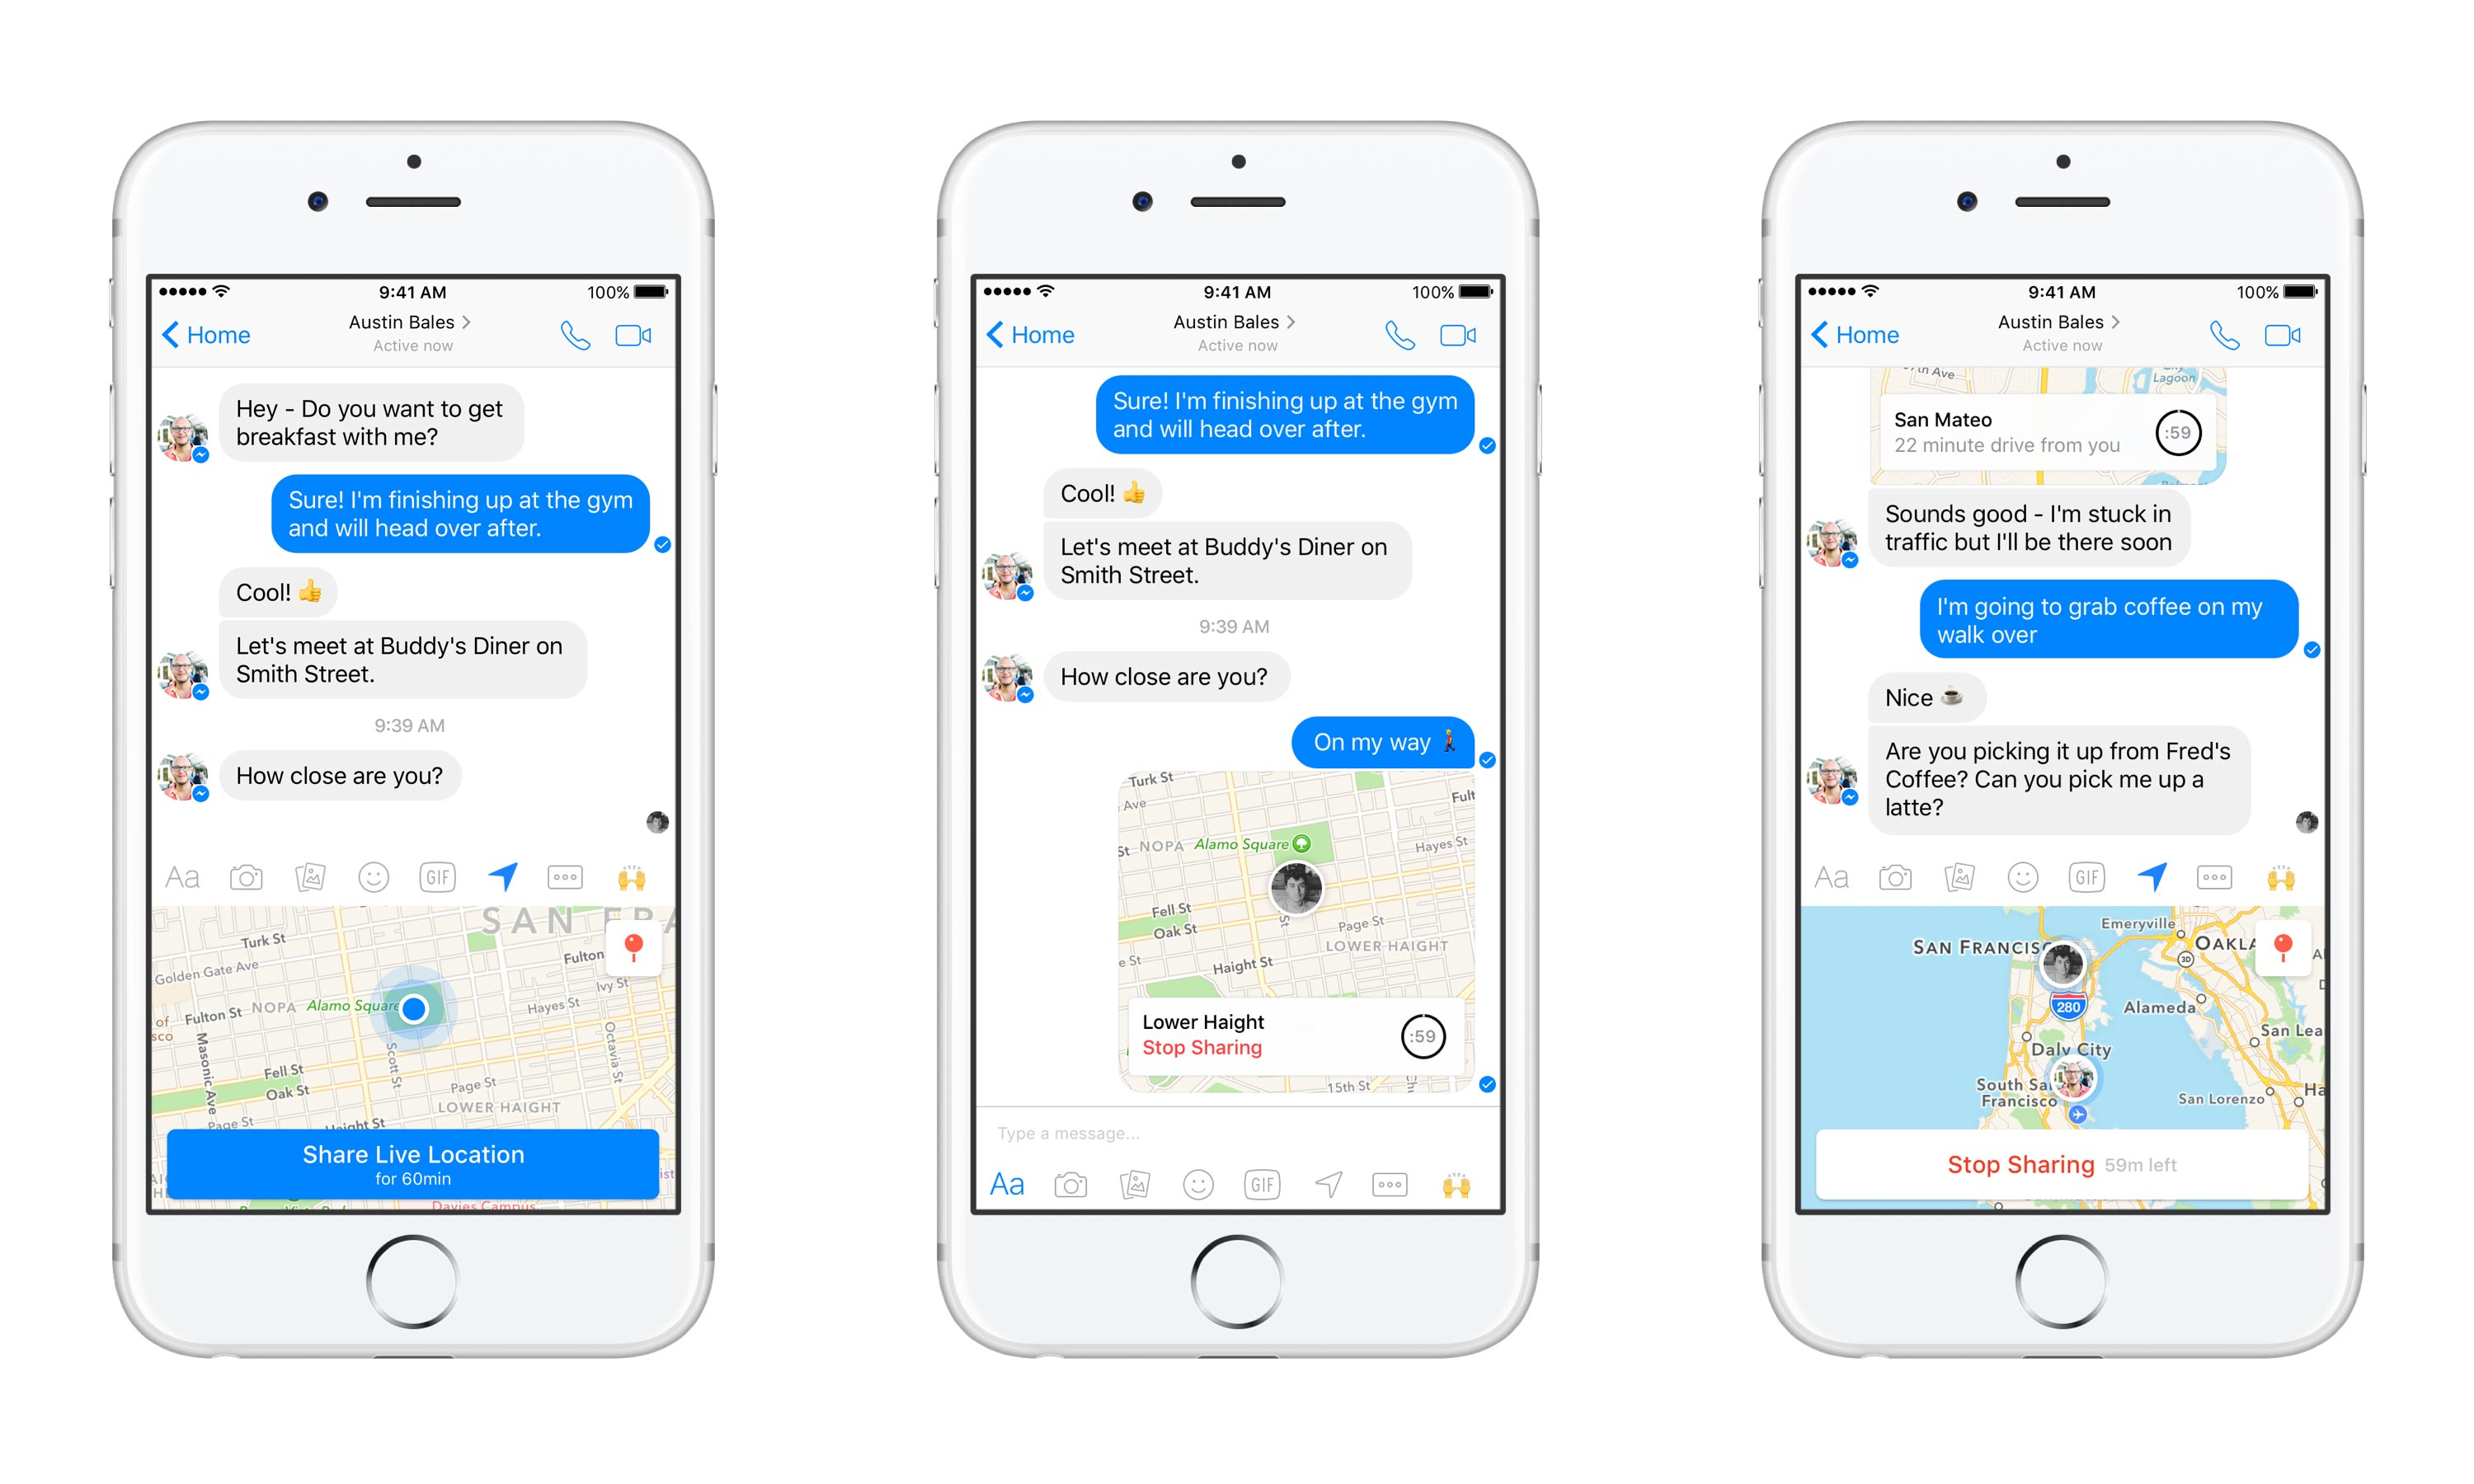 Facebook Messenger now lets you share your live location, but only